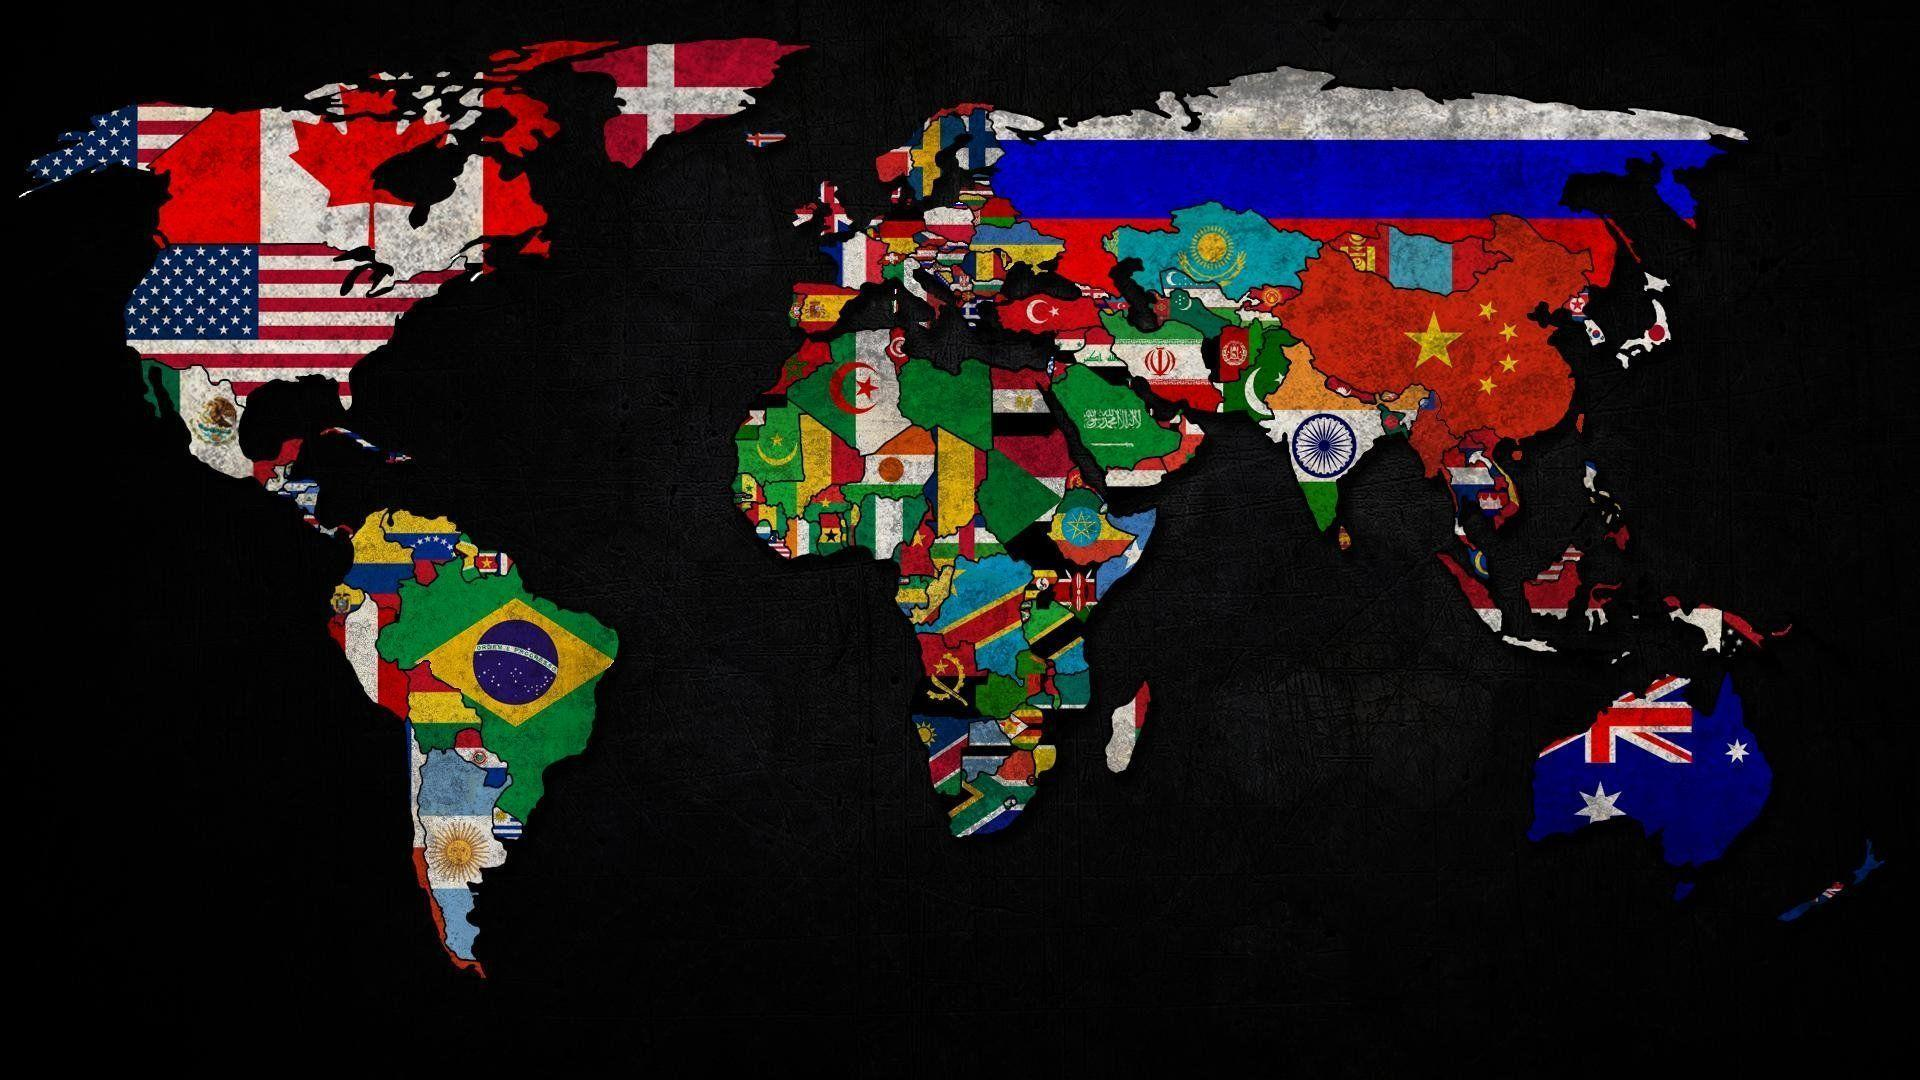 148 World Map HD Wallpapers